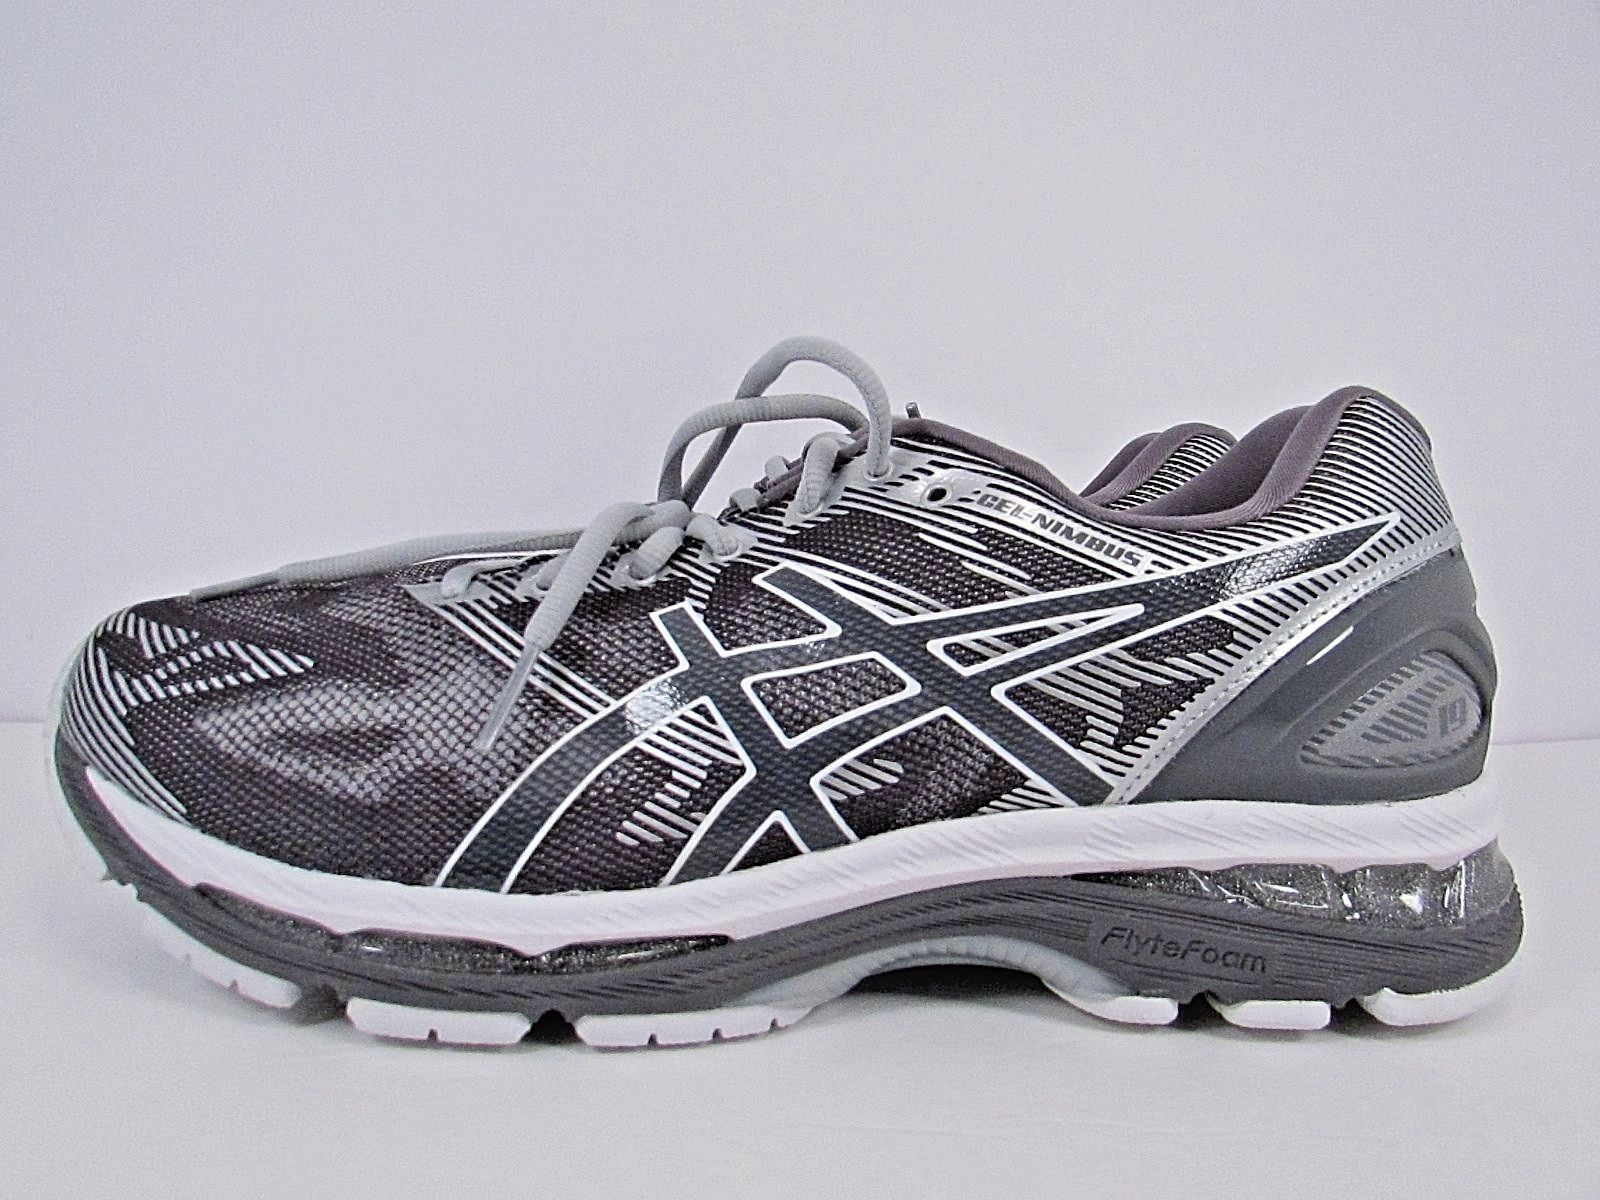 lowest price ca004 81226 MENS ASICS GEL NIMBUS 19 SIZE 9 (2E) WIDE !! BRAND NEW ...